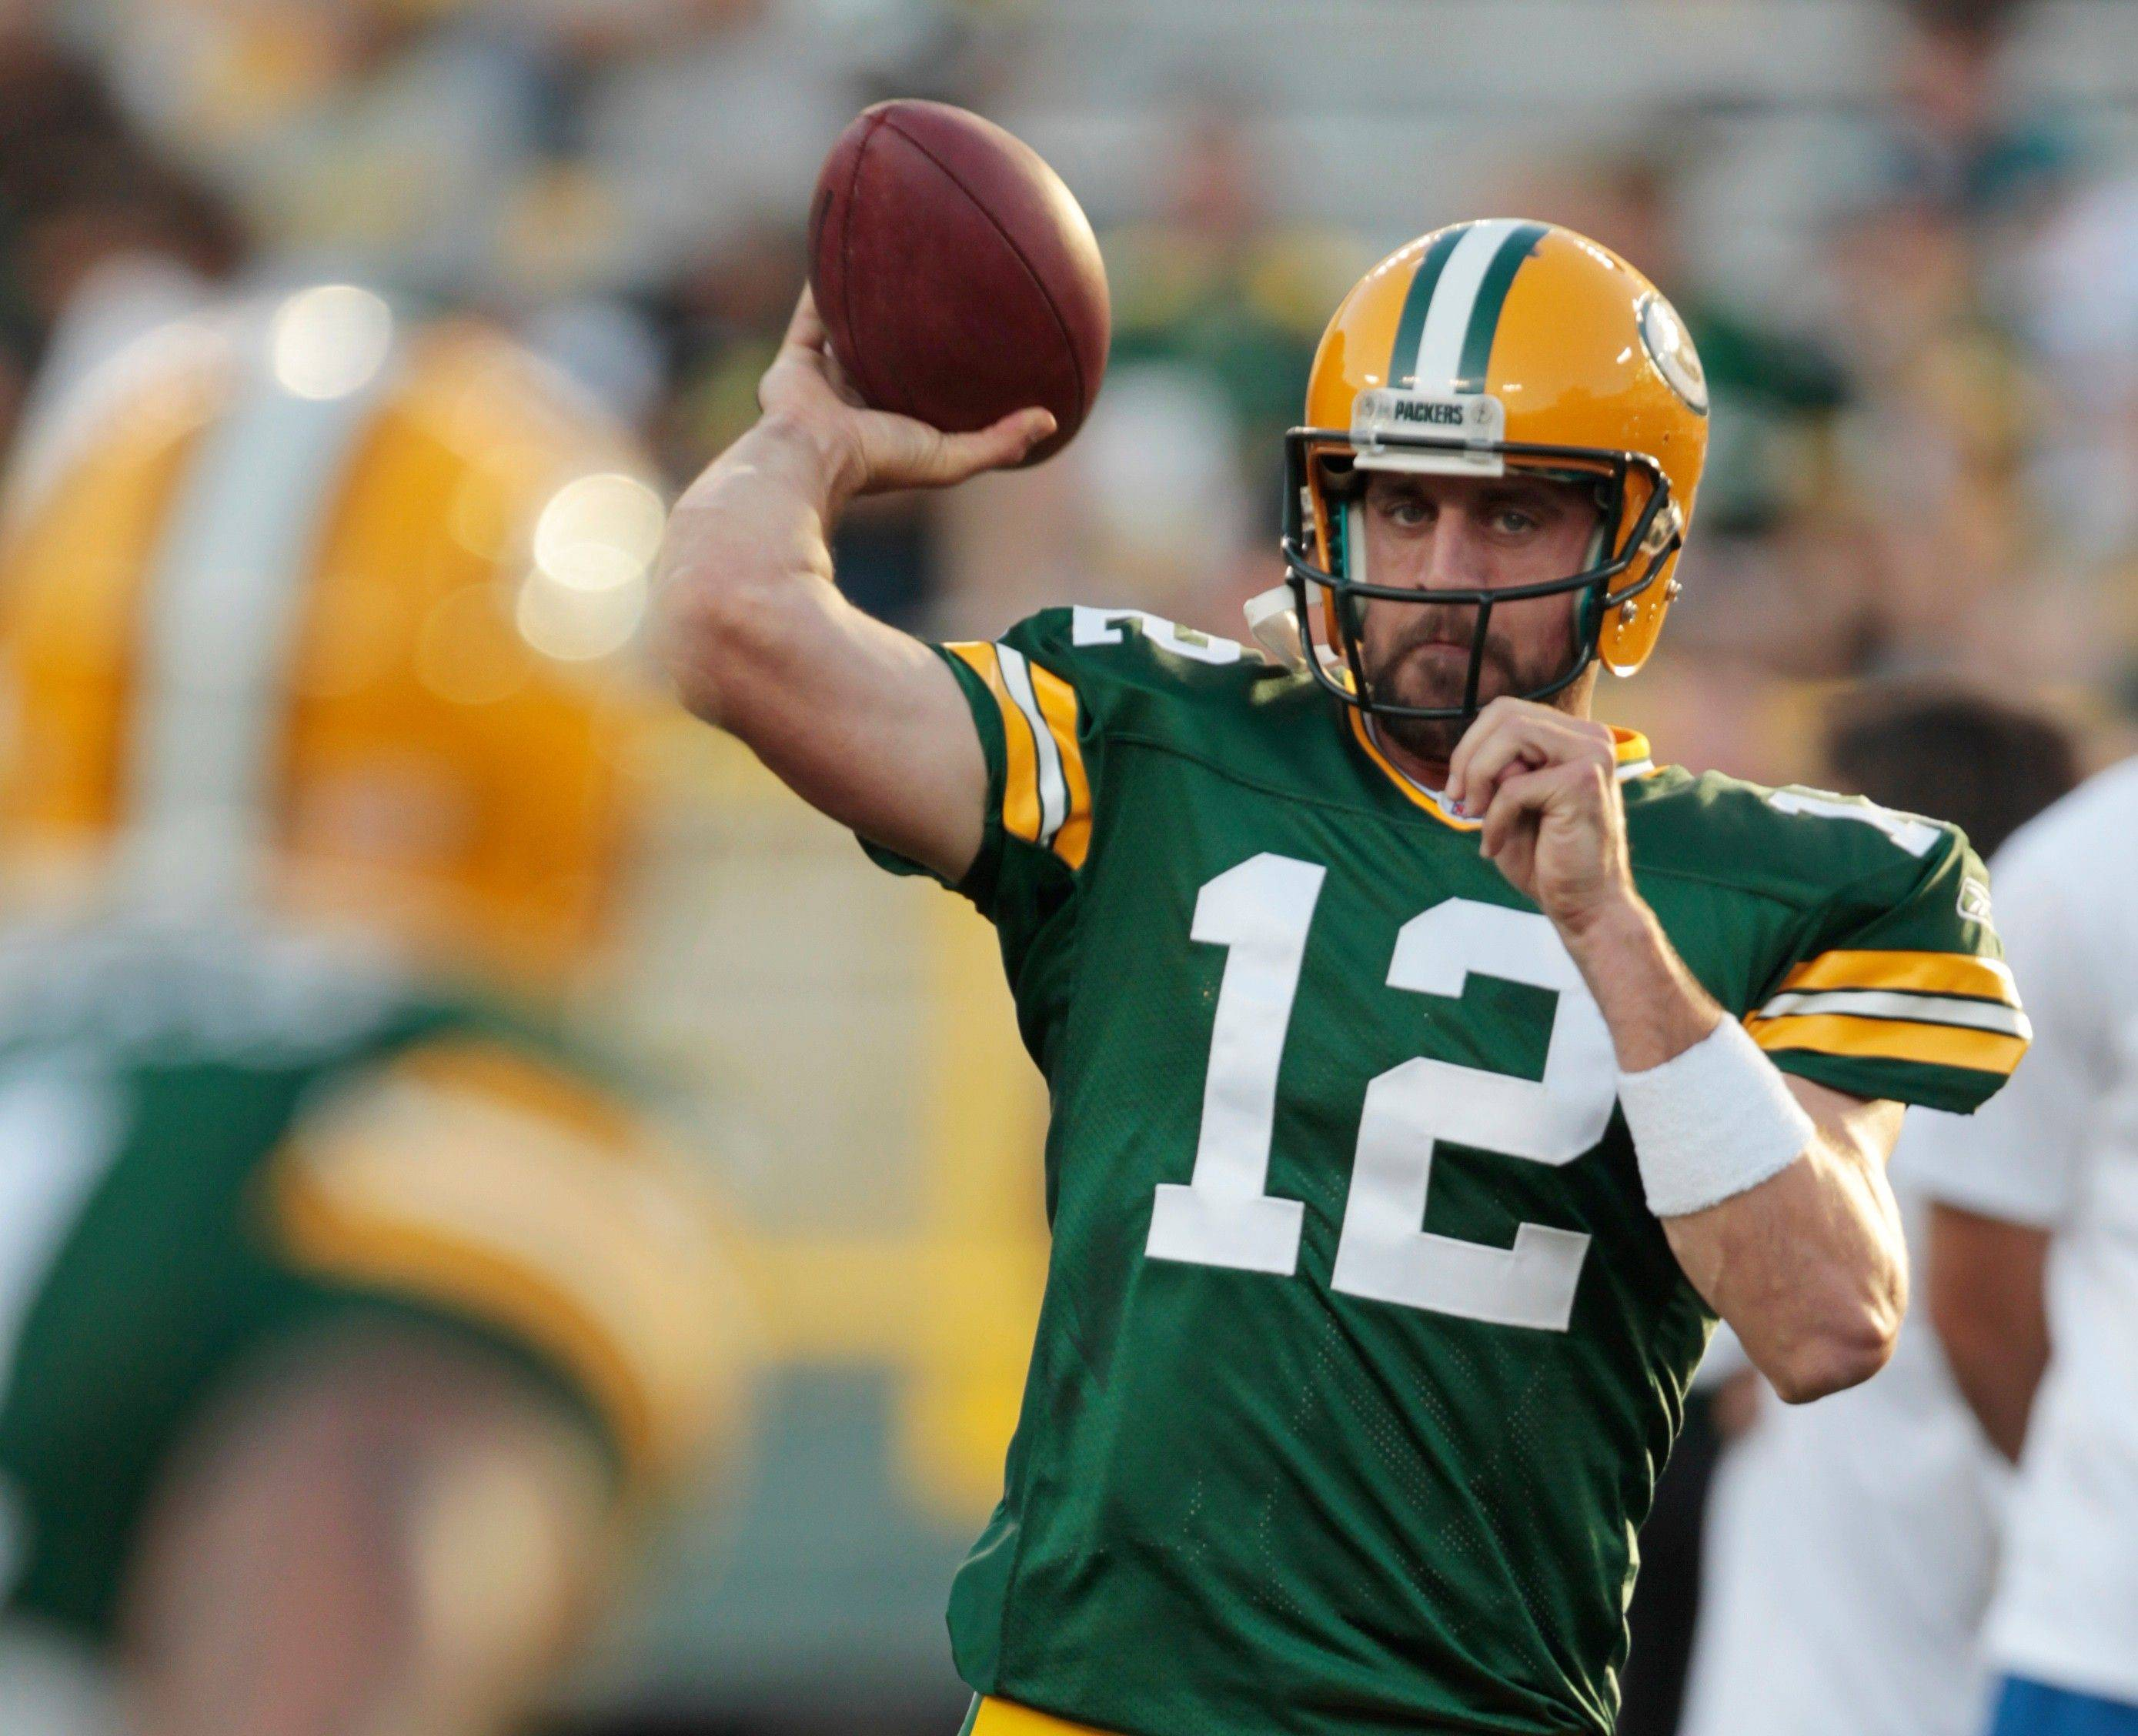 Green Bay's Aaron Rodgers has averaged 28.7 TD passes and 4.3 TD runs since becoming a starter in 2008.